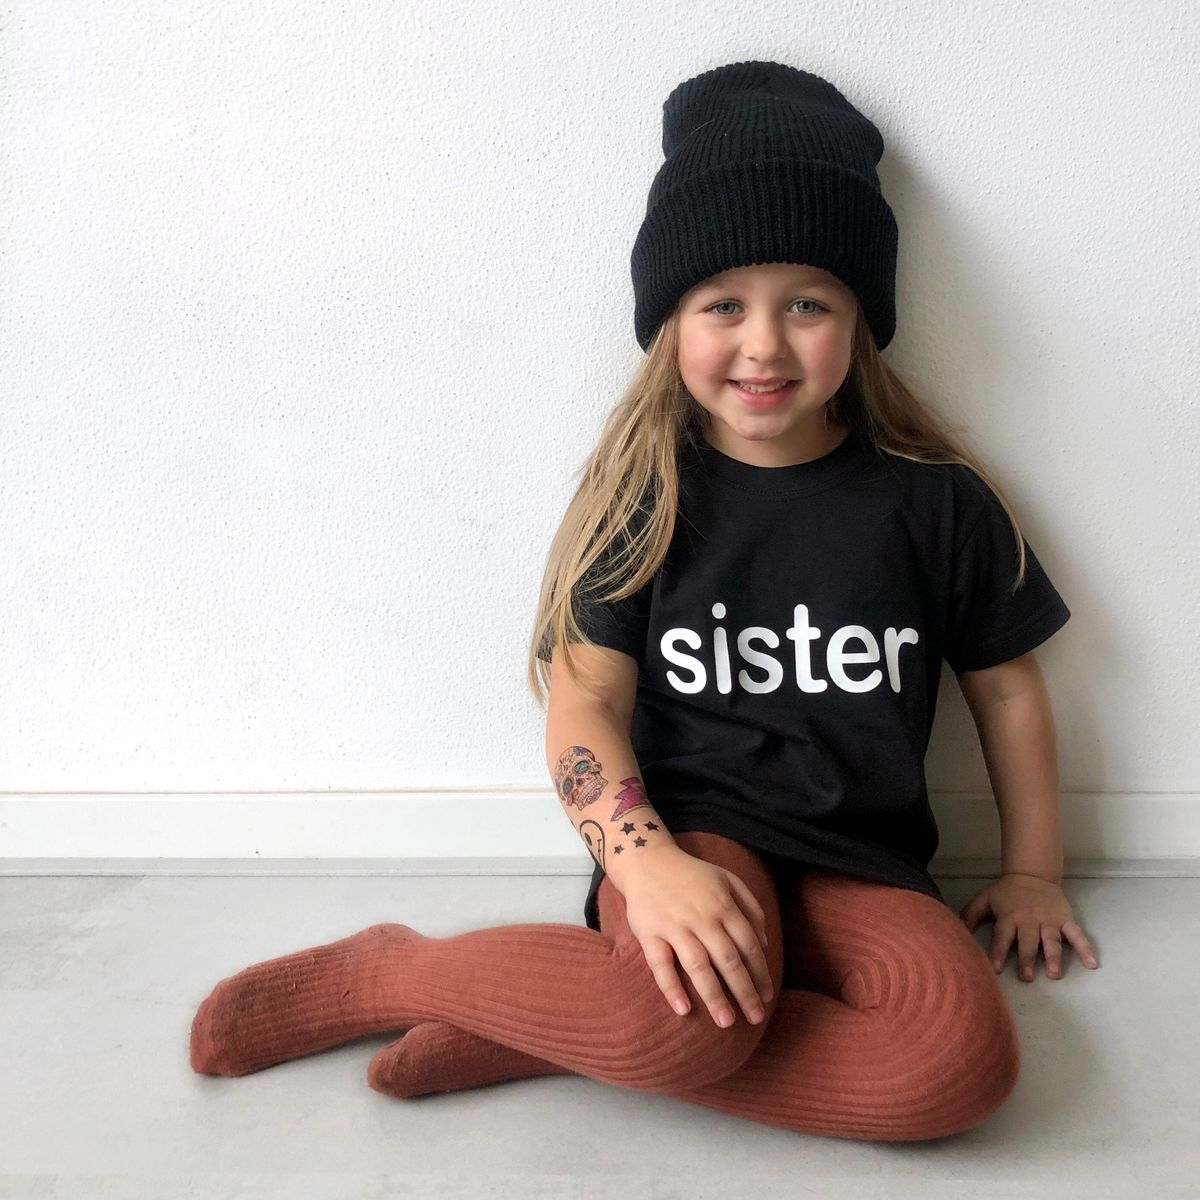 Sister Black or White T-Shirt - product images  of